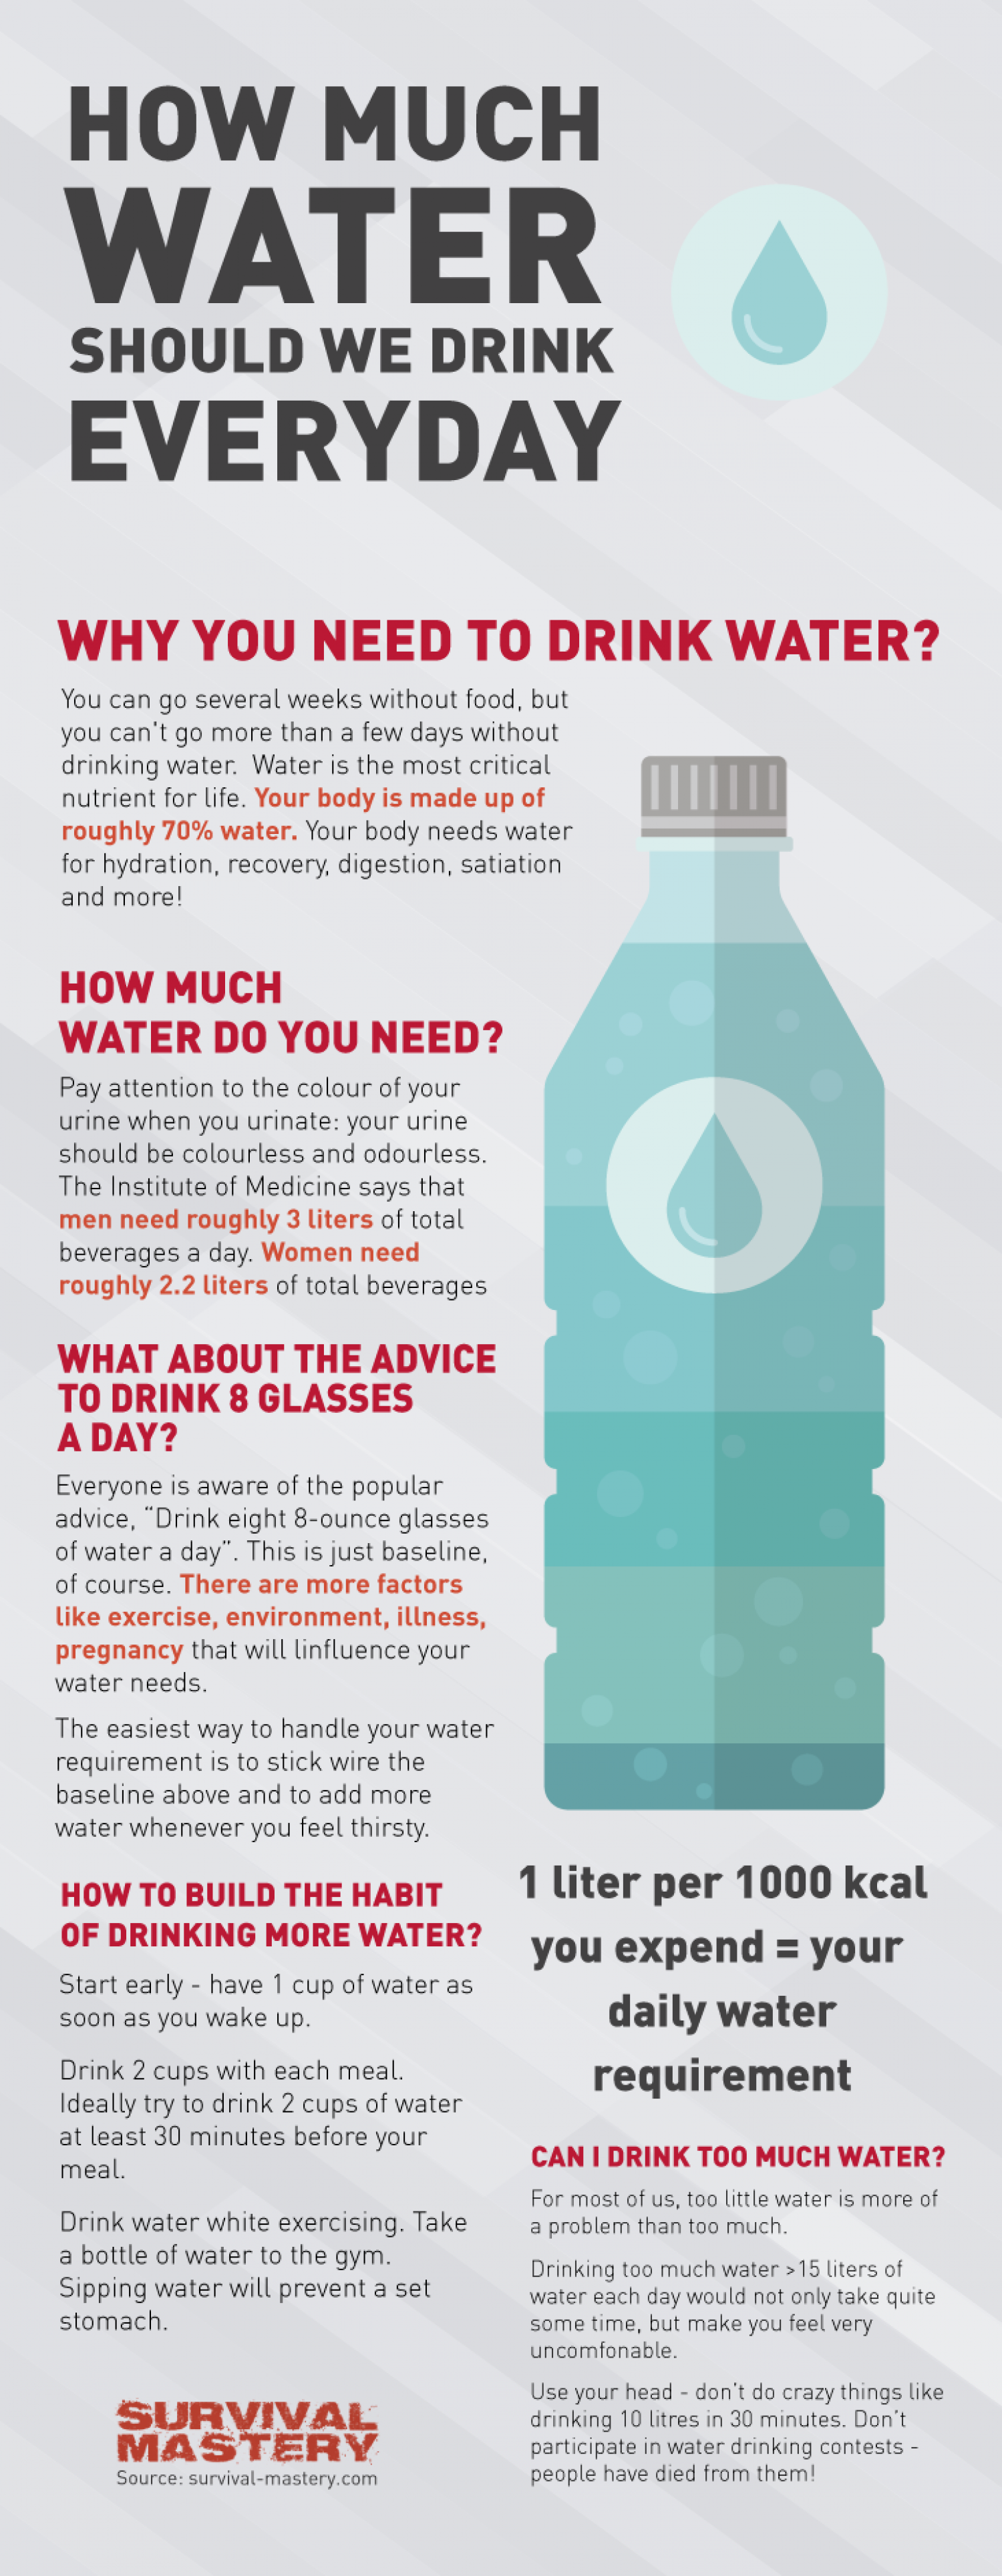 Want to Live Healthy? Develop a Water Drinking Habit! - Infographic